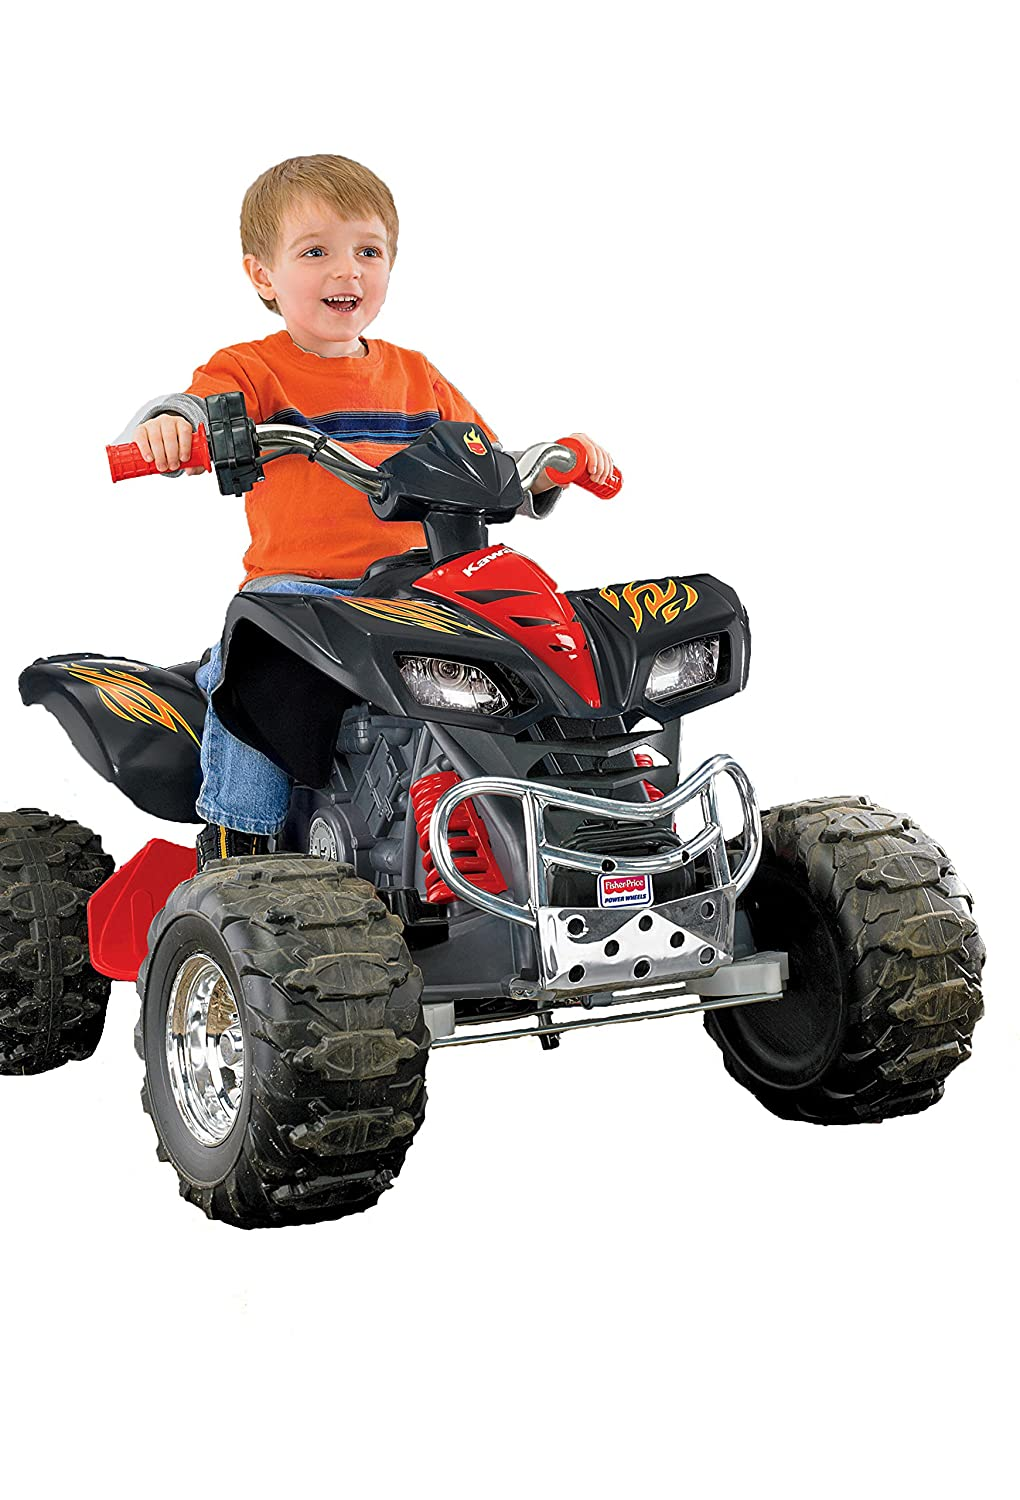 Cool Riding Toys For Boys : Cool toys for year old boys what to buy a